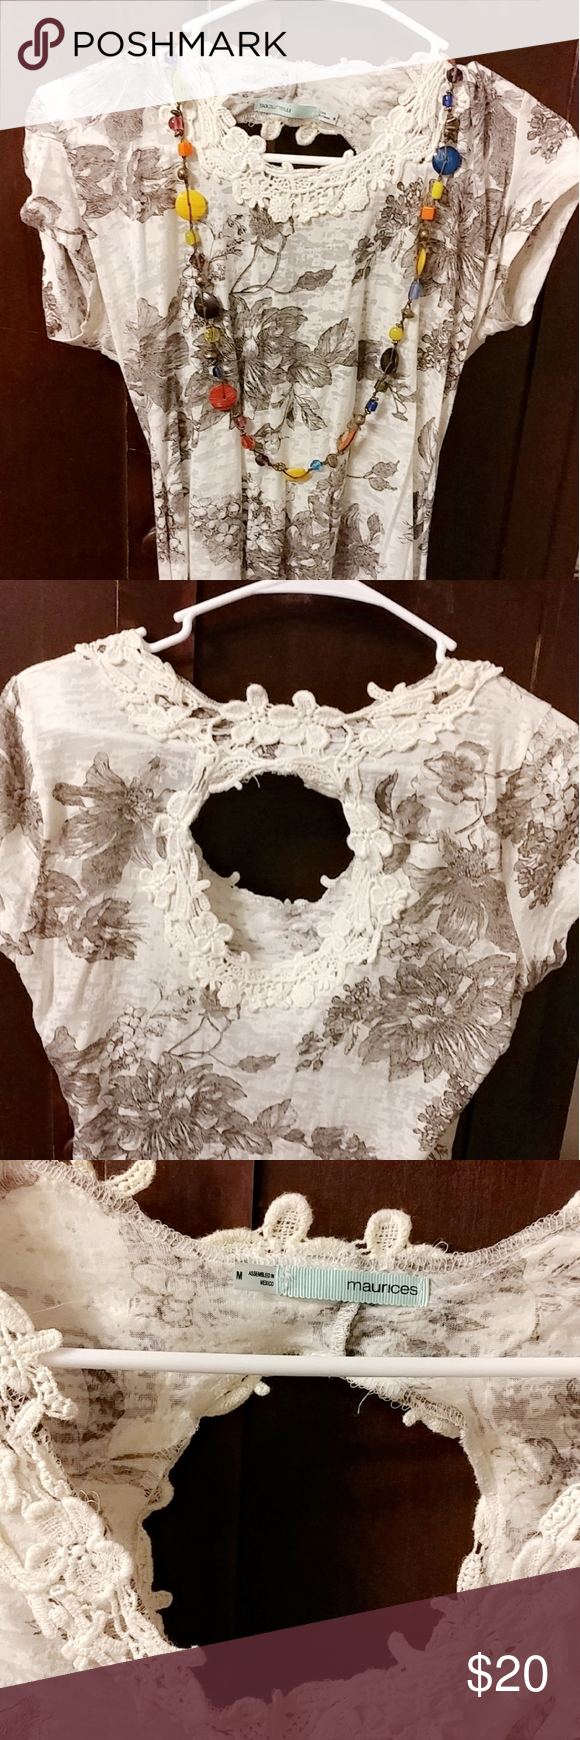 ✨Maurices Super Cute Top✨ Top with opening to back?Gypsy Boho BO HO hippi...